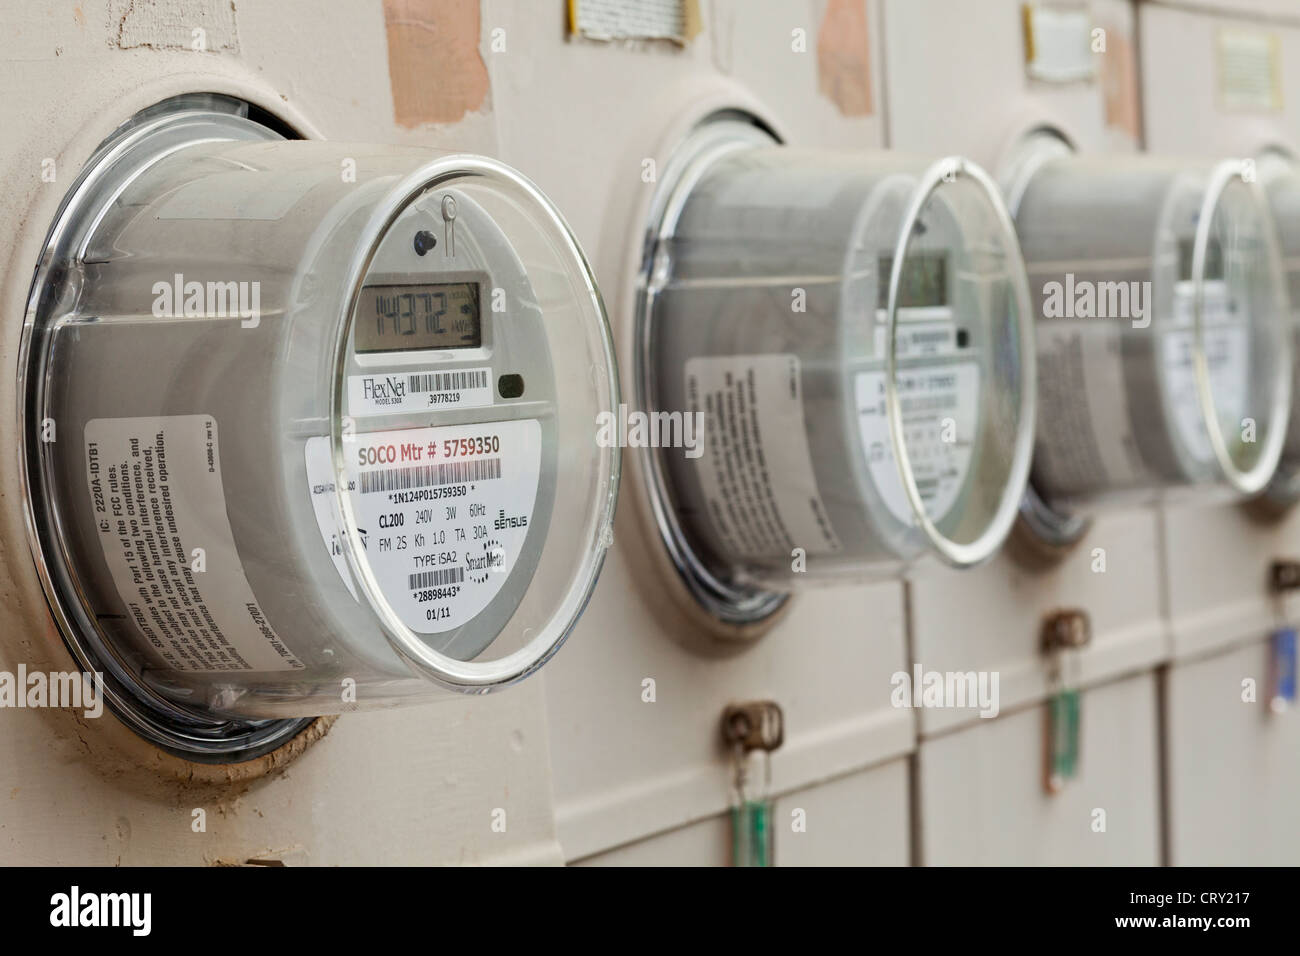 Digital Electric Meters for Apartment Complex - Stock Image